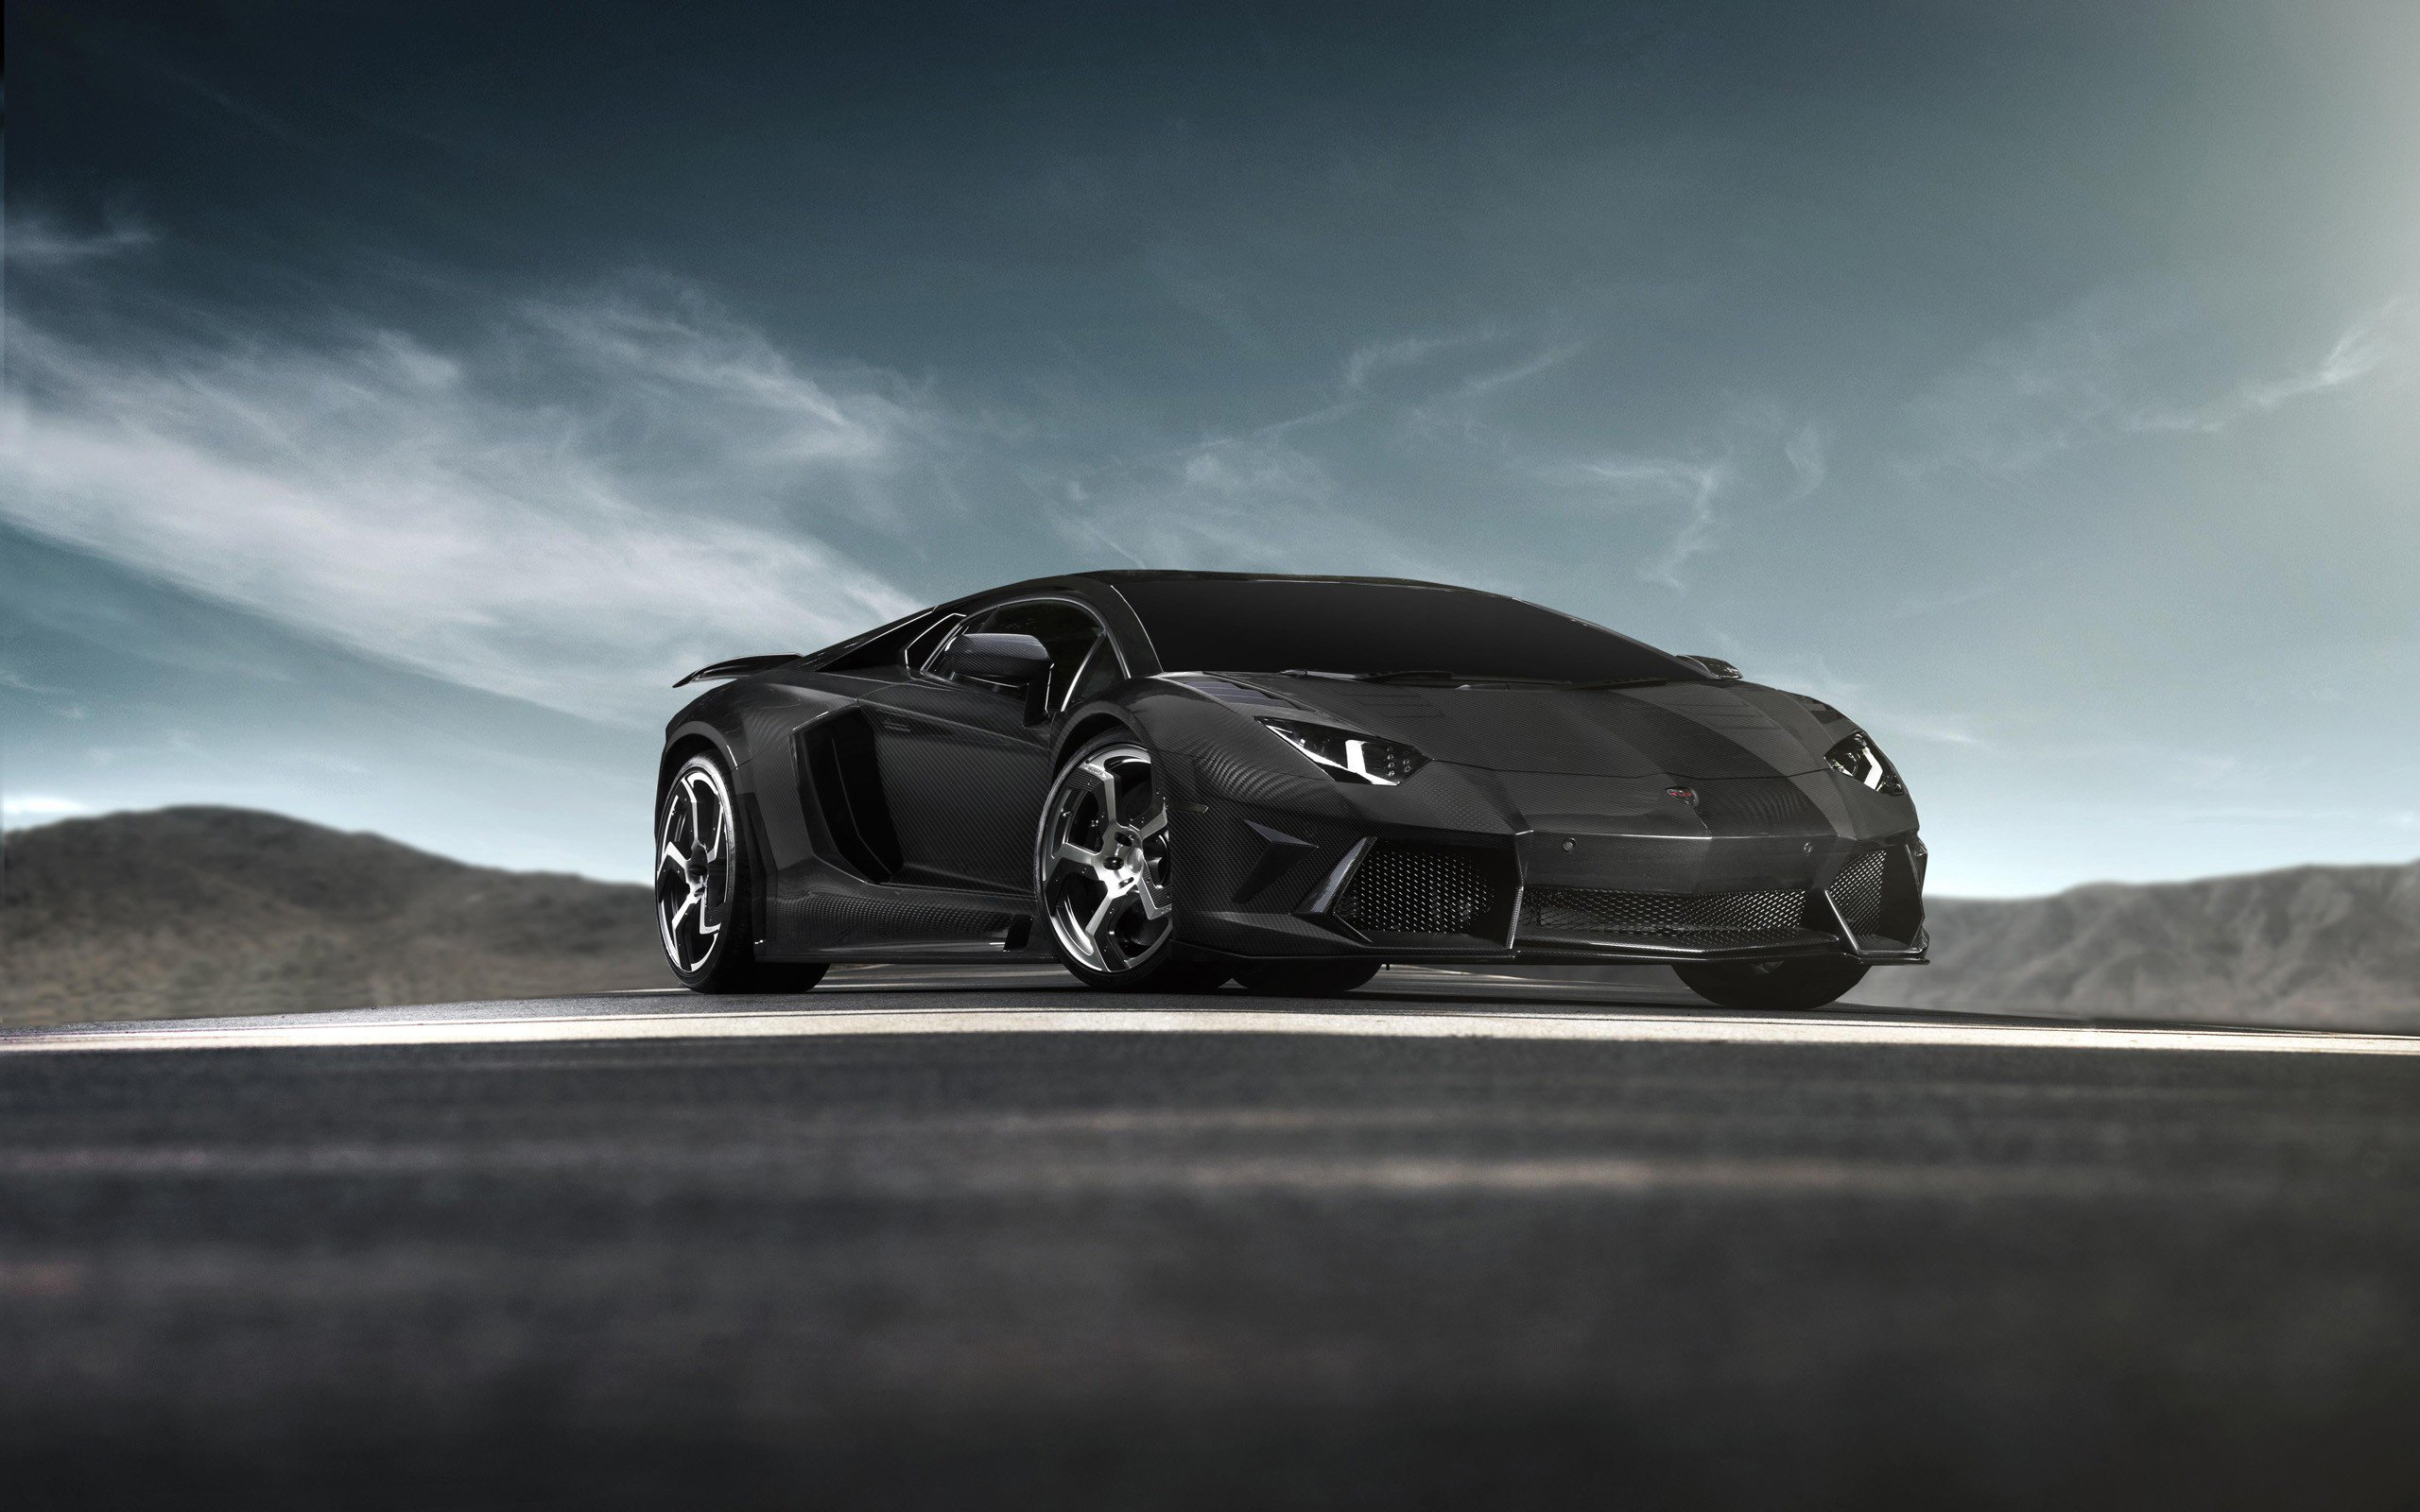 Lamborghini Full Black